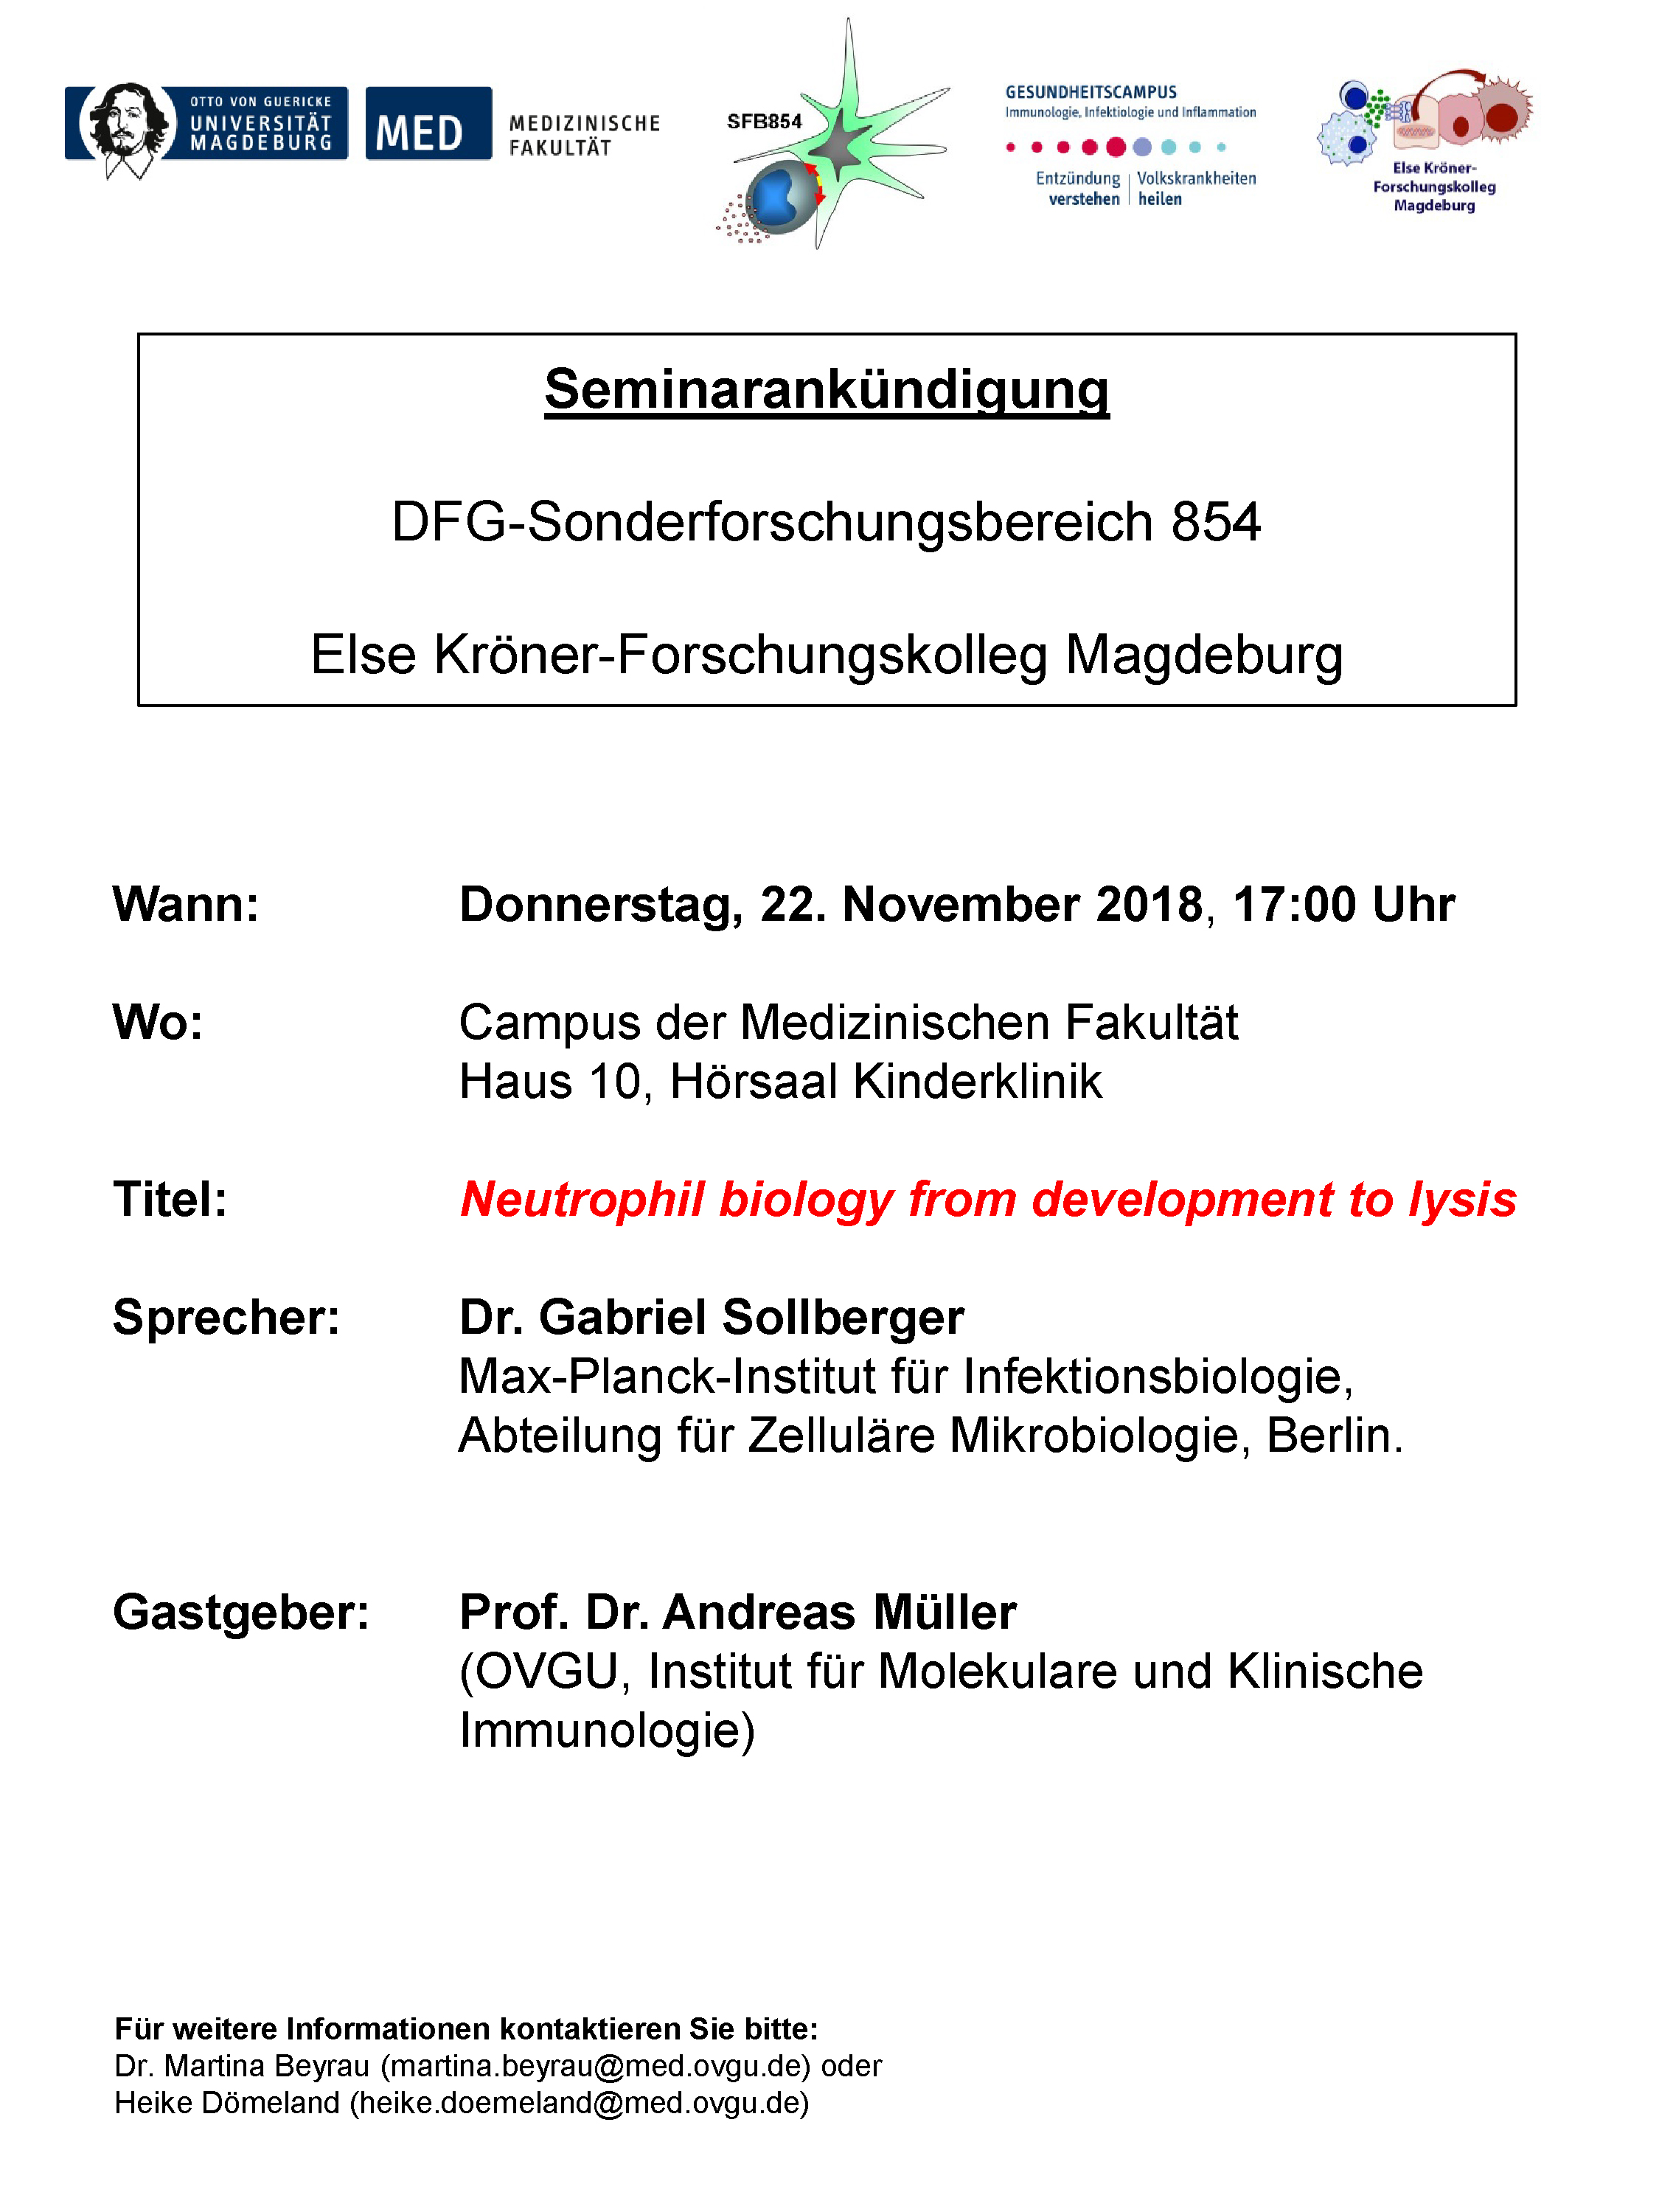 Seminar SFB 854: Neutrophil biology from development to lysis @ Campus der Medizinischen Fakultät Haus 10, Hörsaal Kinderklinik | Magdeburg | Sachsen-Anhalt | Germany